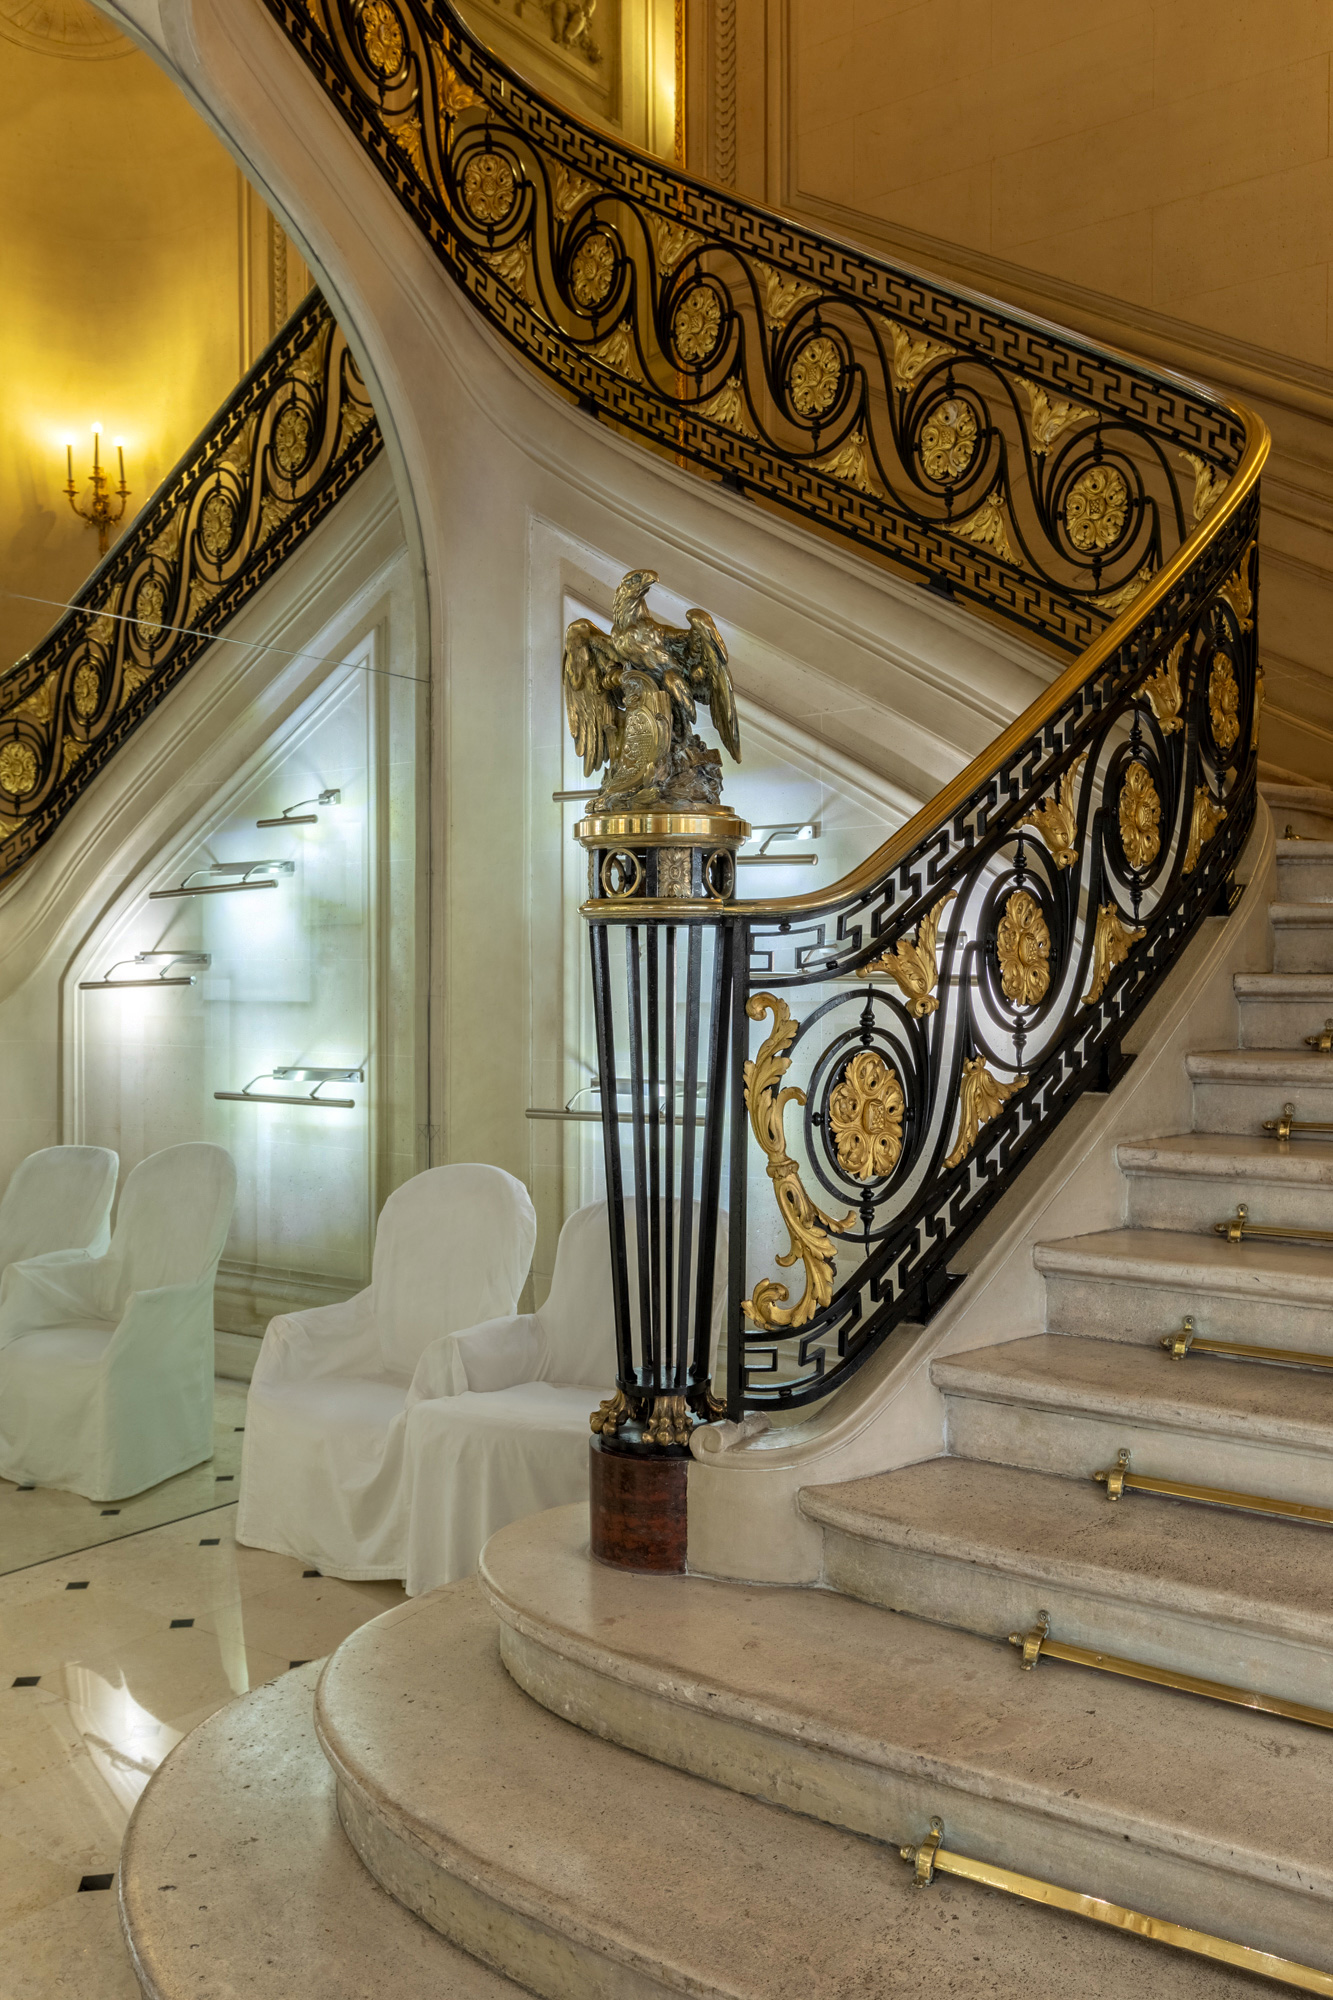 hotel staircase with a metal eagle